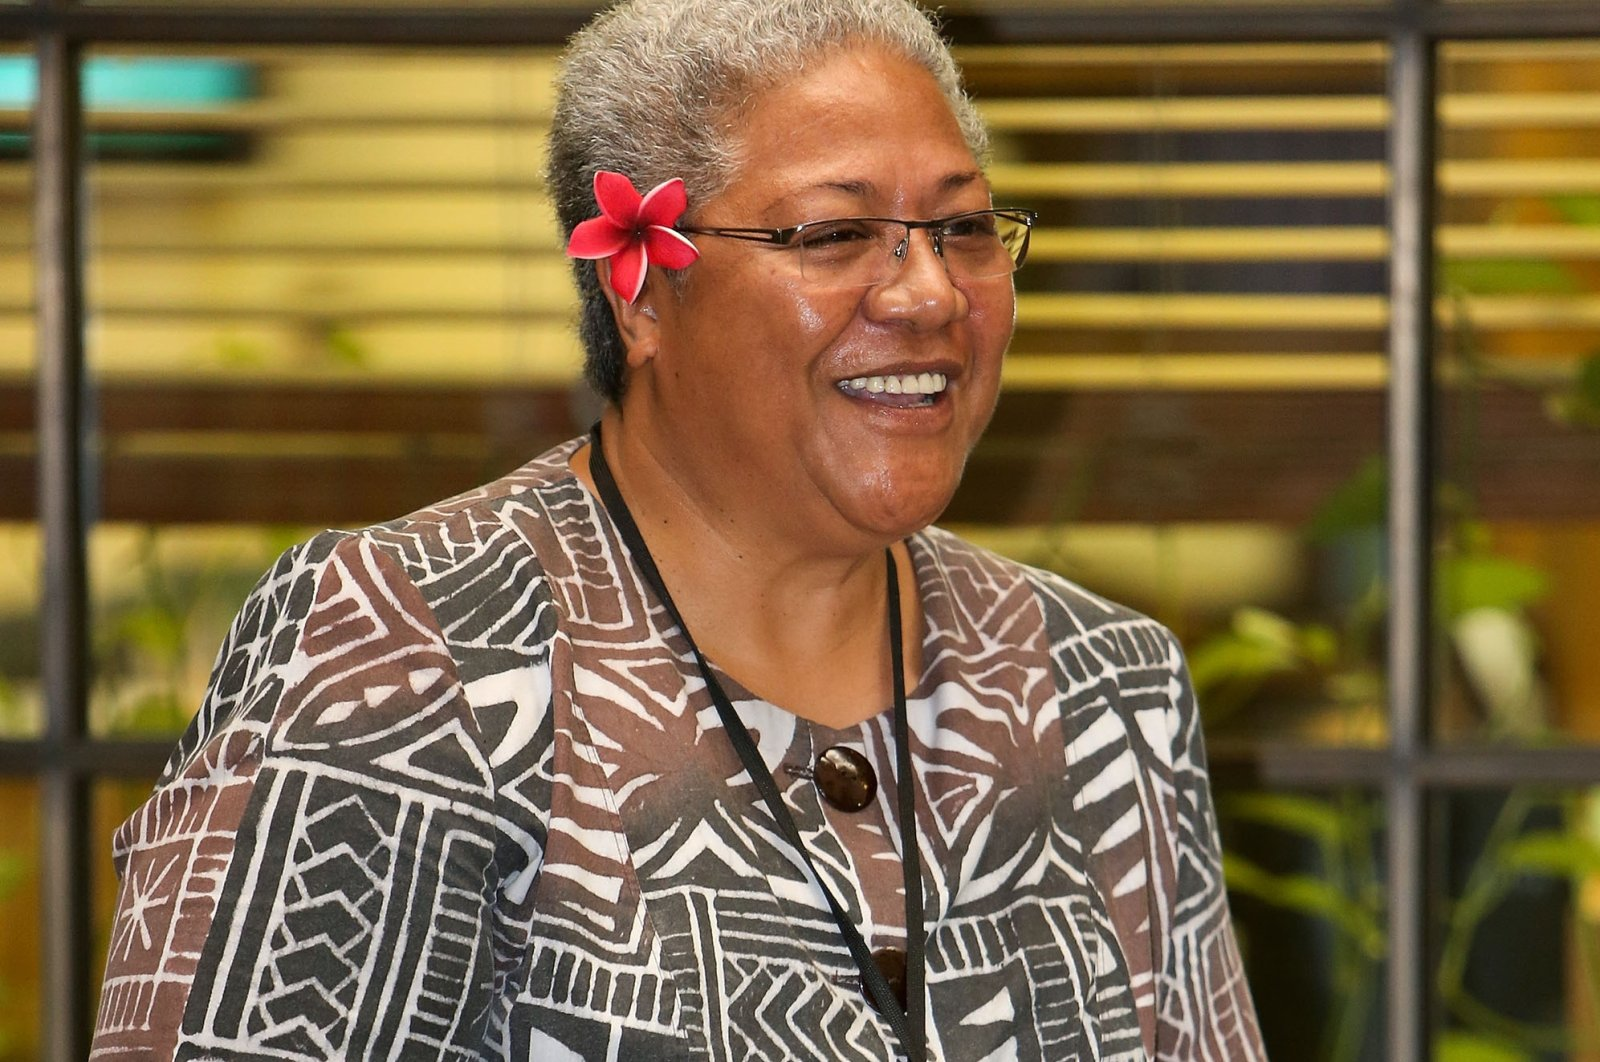 Samoa's Prime Minister-elect Fiame Naomi Mata'afa speaks during the Pacific Parliamentary and Political Leaders Forum at Parliament on April 18, 2013 in Wellington, New Zealand. (Getty Images)